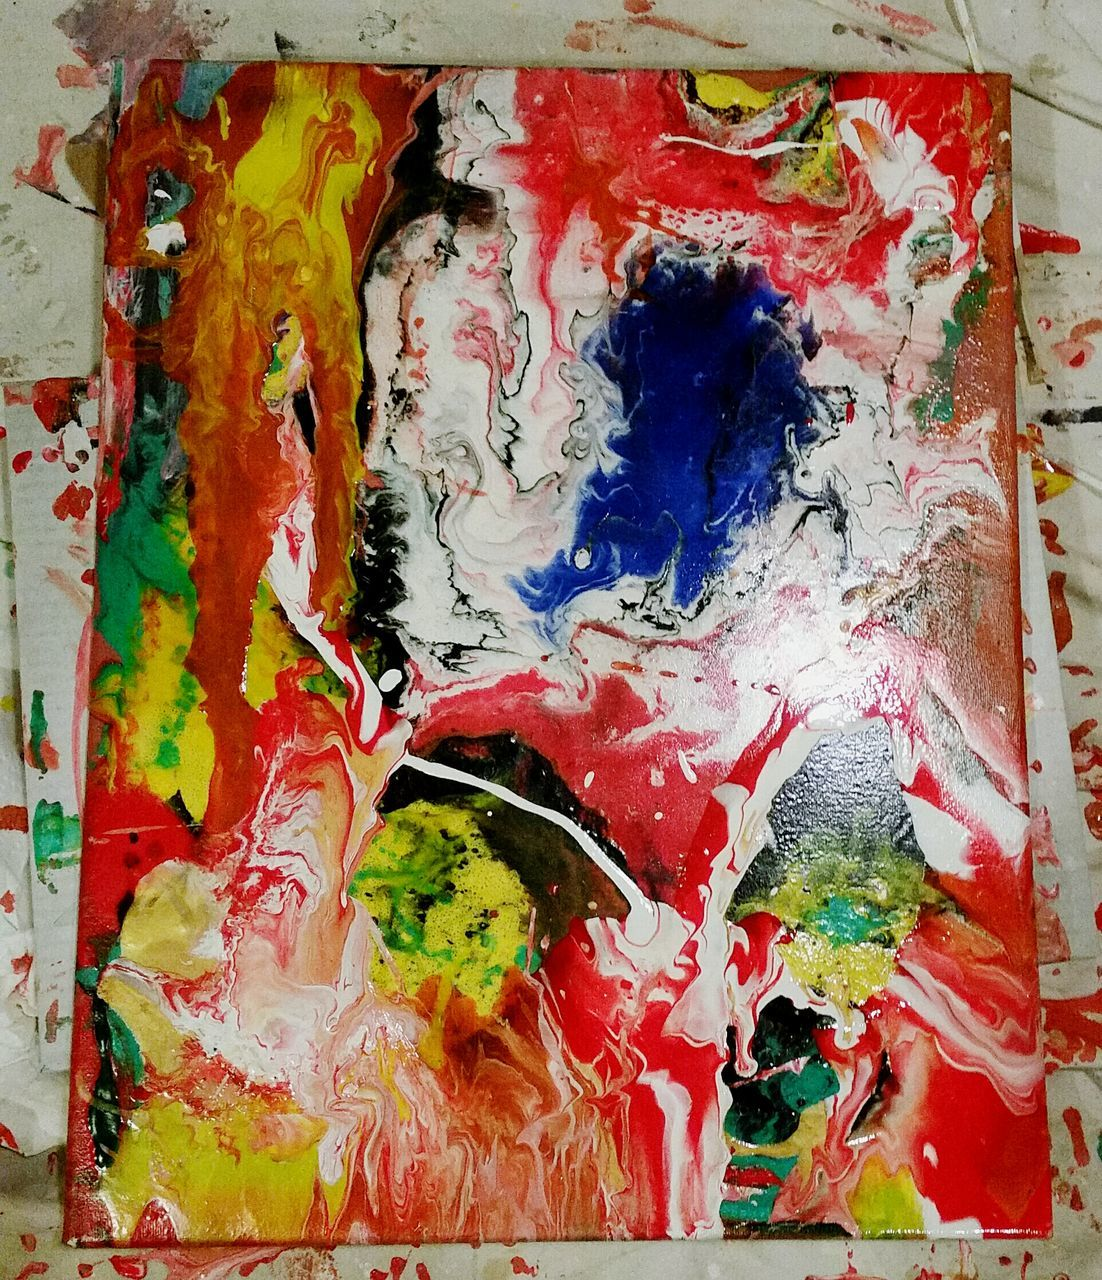 paint, close-up, abstract, multi colored, backgrounds, variation, indoors, full frame, textured, palette, no people, day